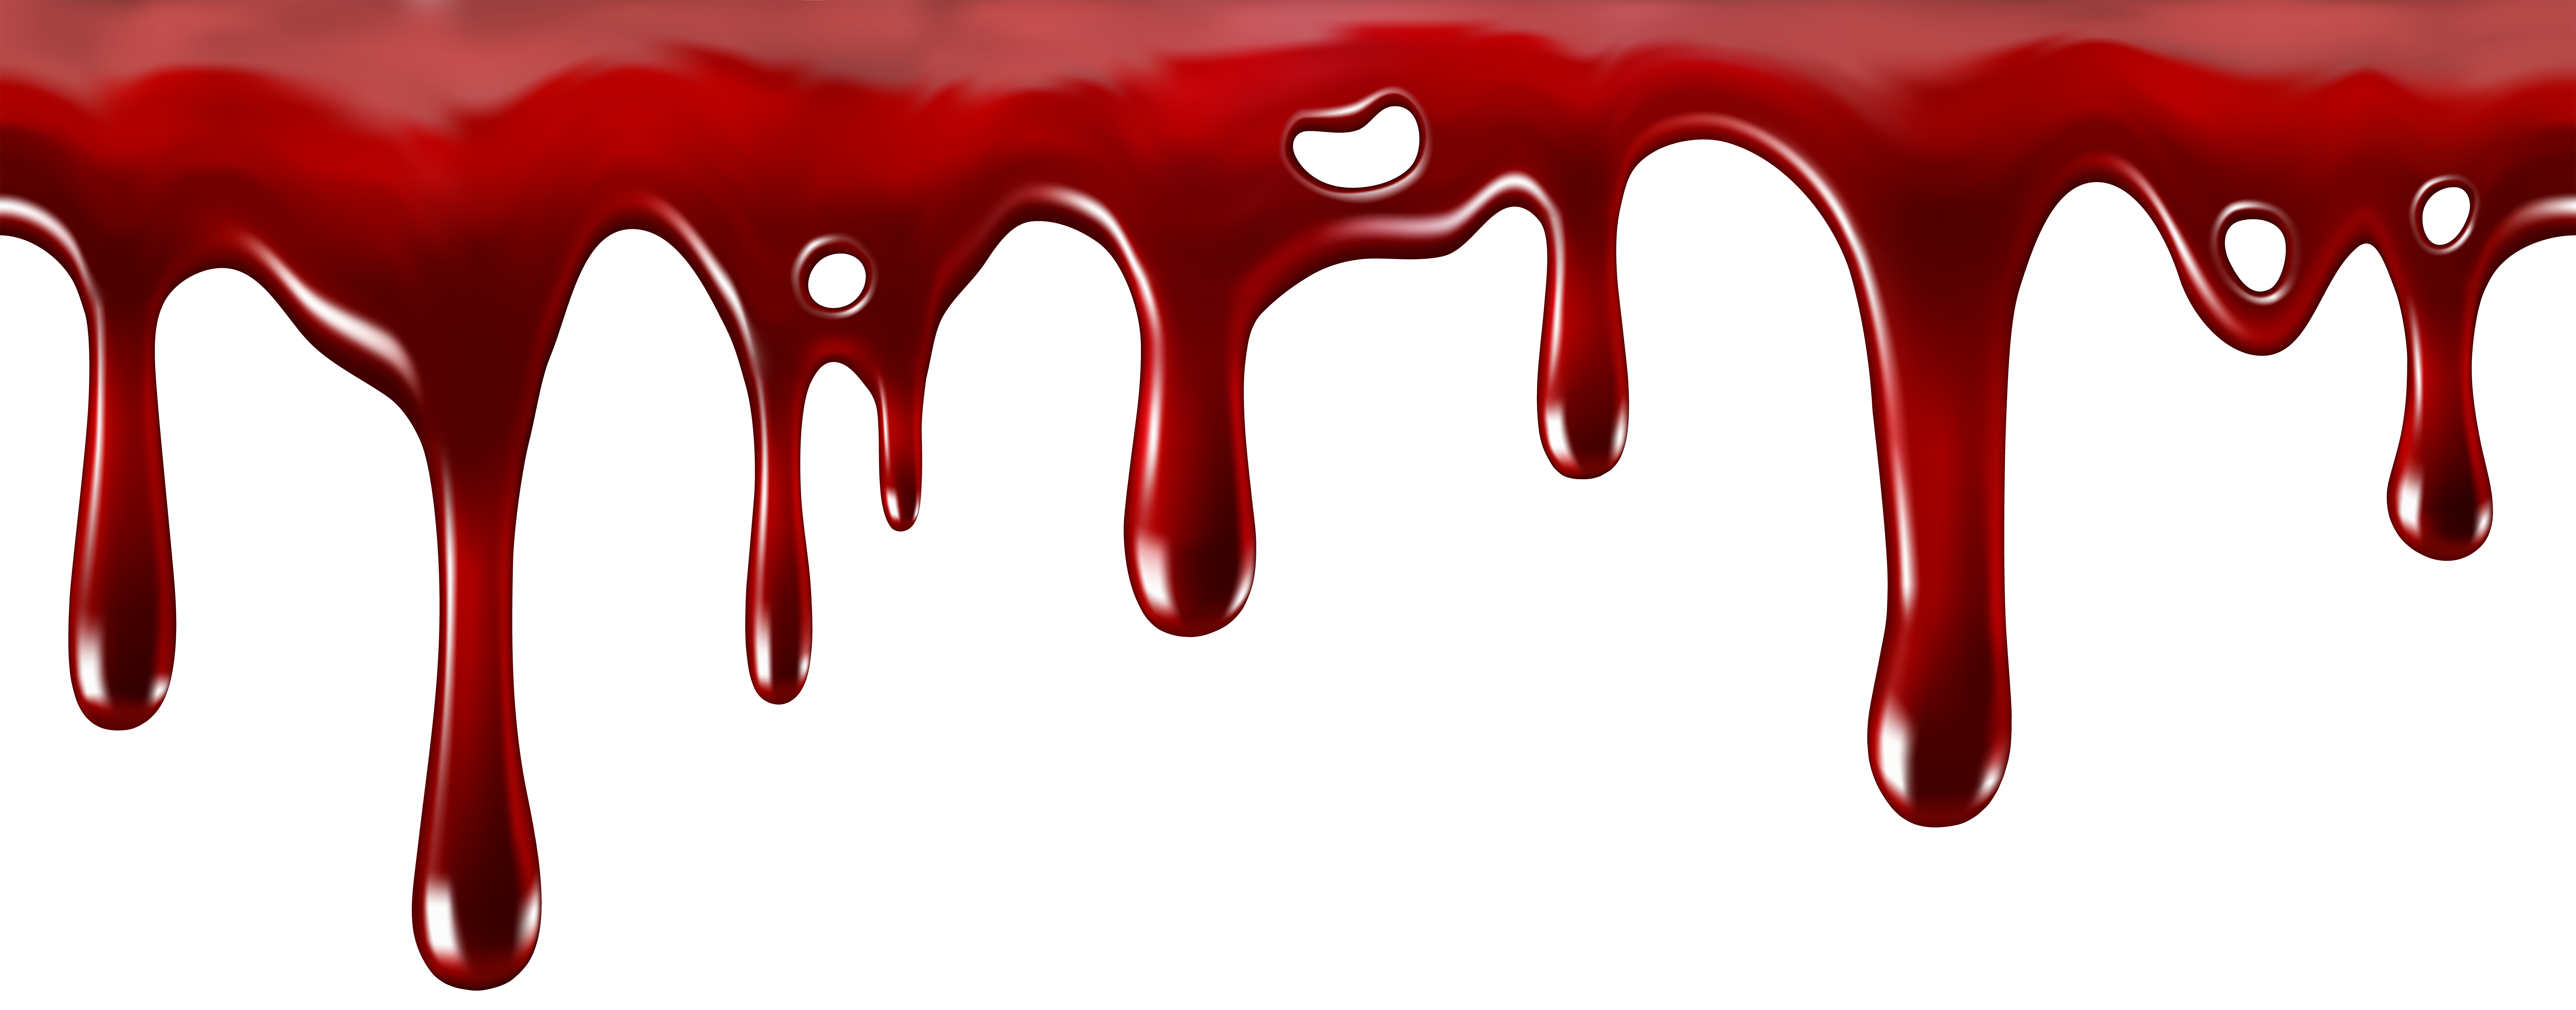 Fake blood drip png. Dripping decor transparent clip